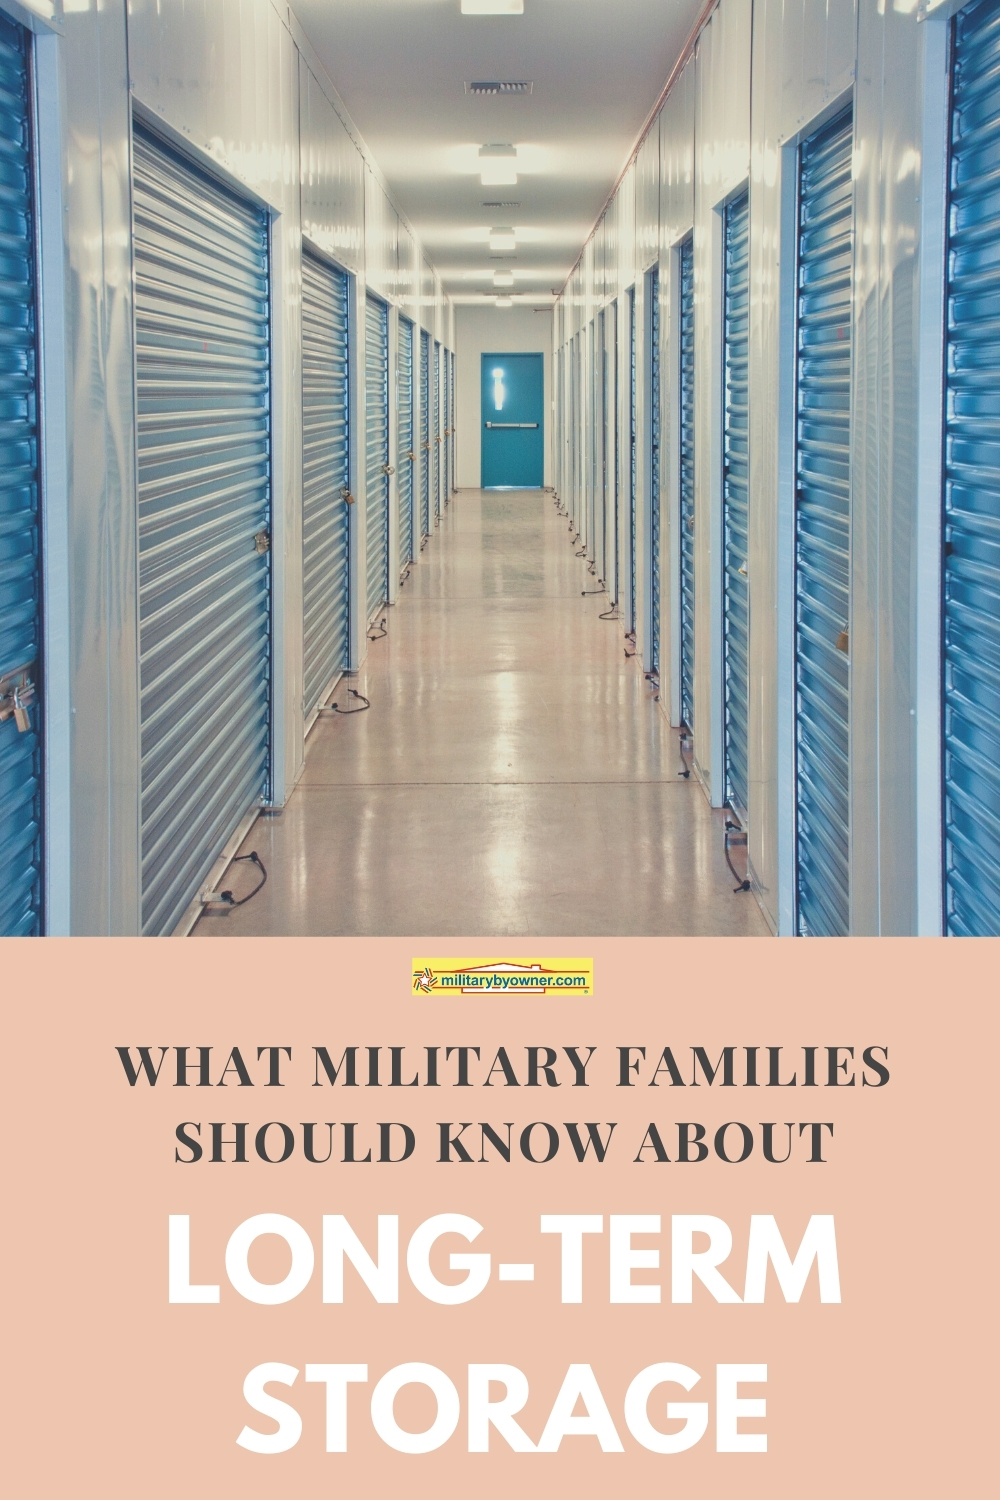 What Military Families Should Know About Long-Term Storage